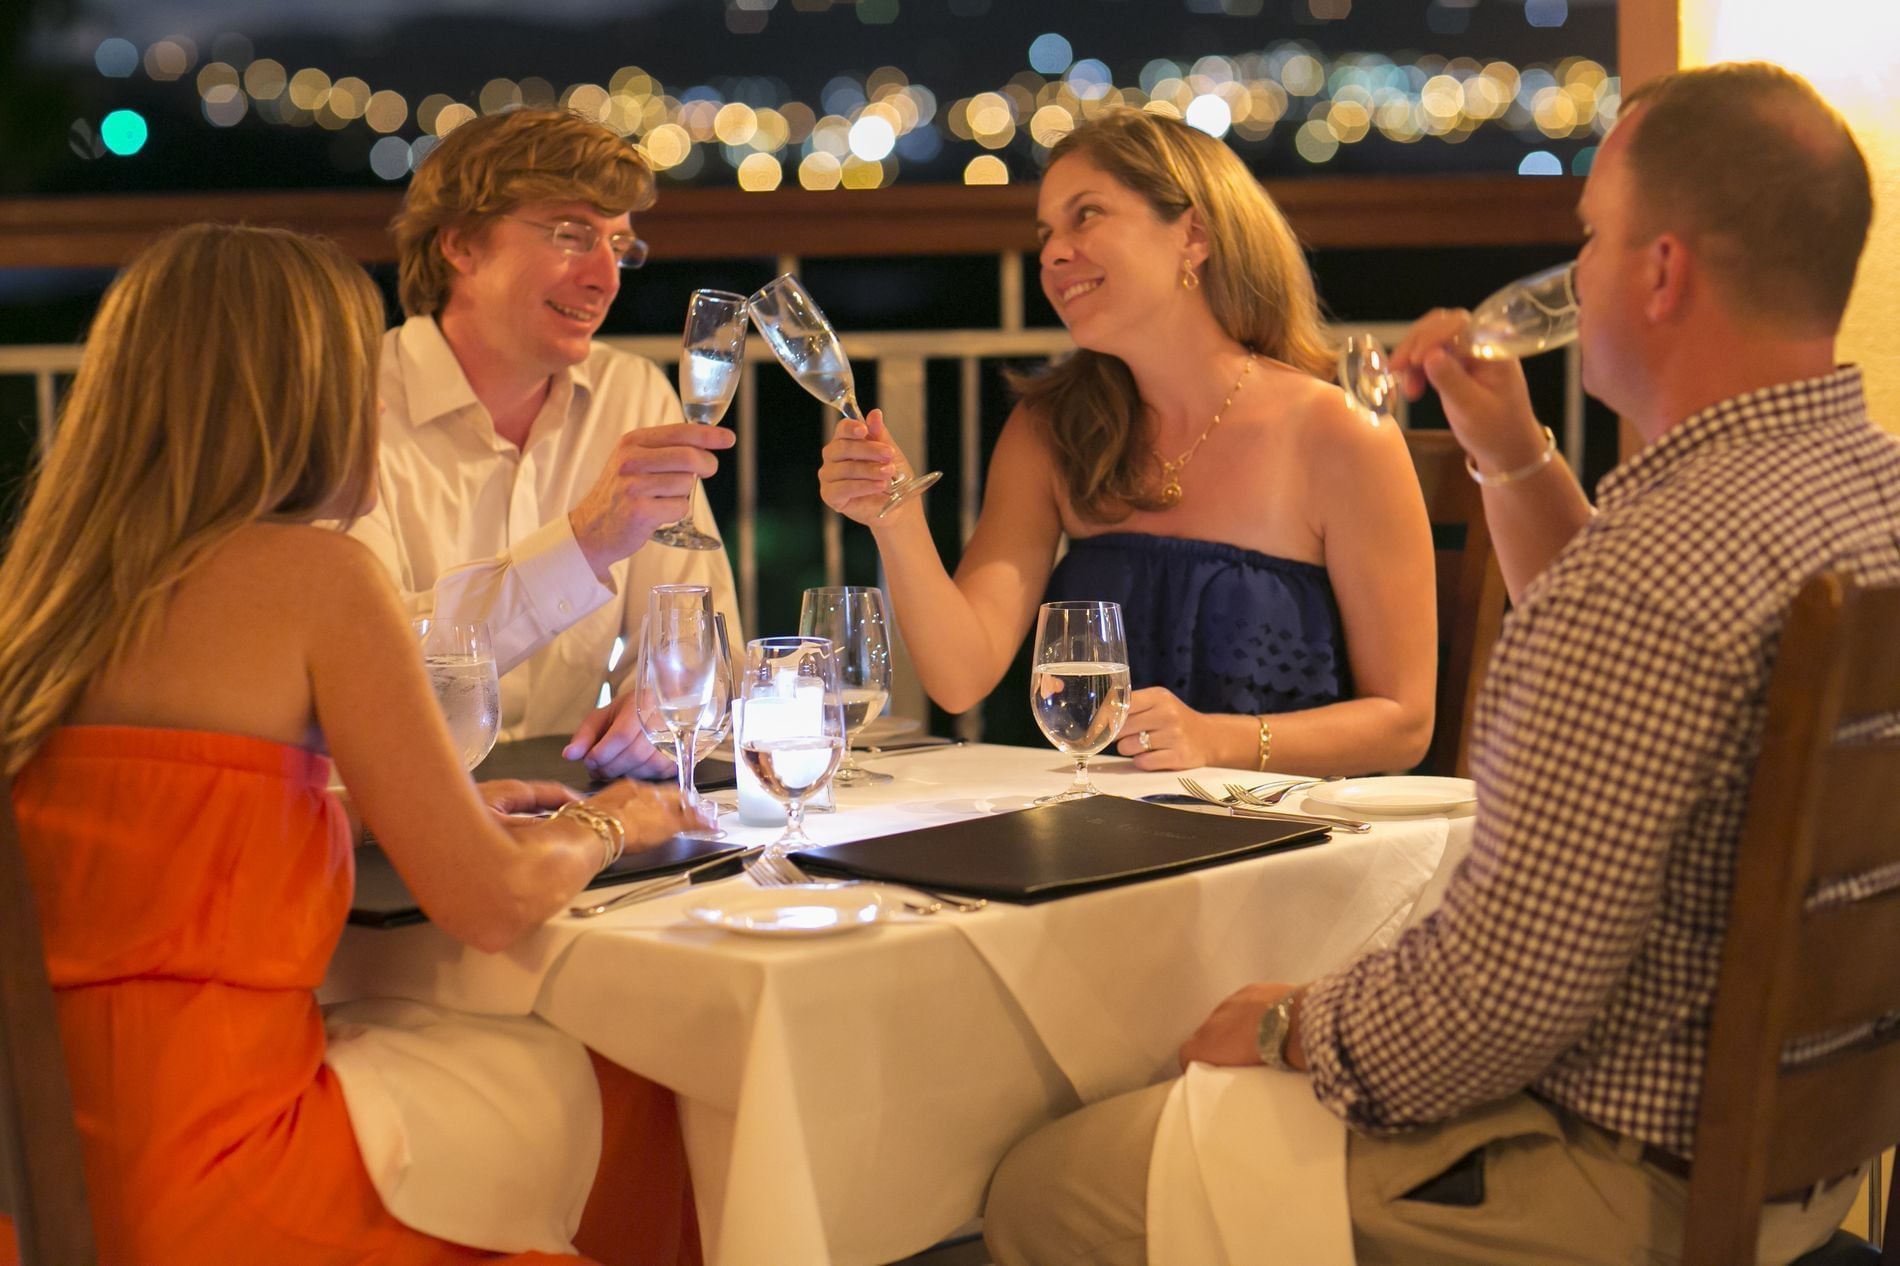 Two couples dining together